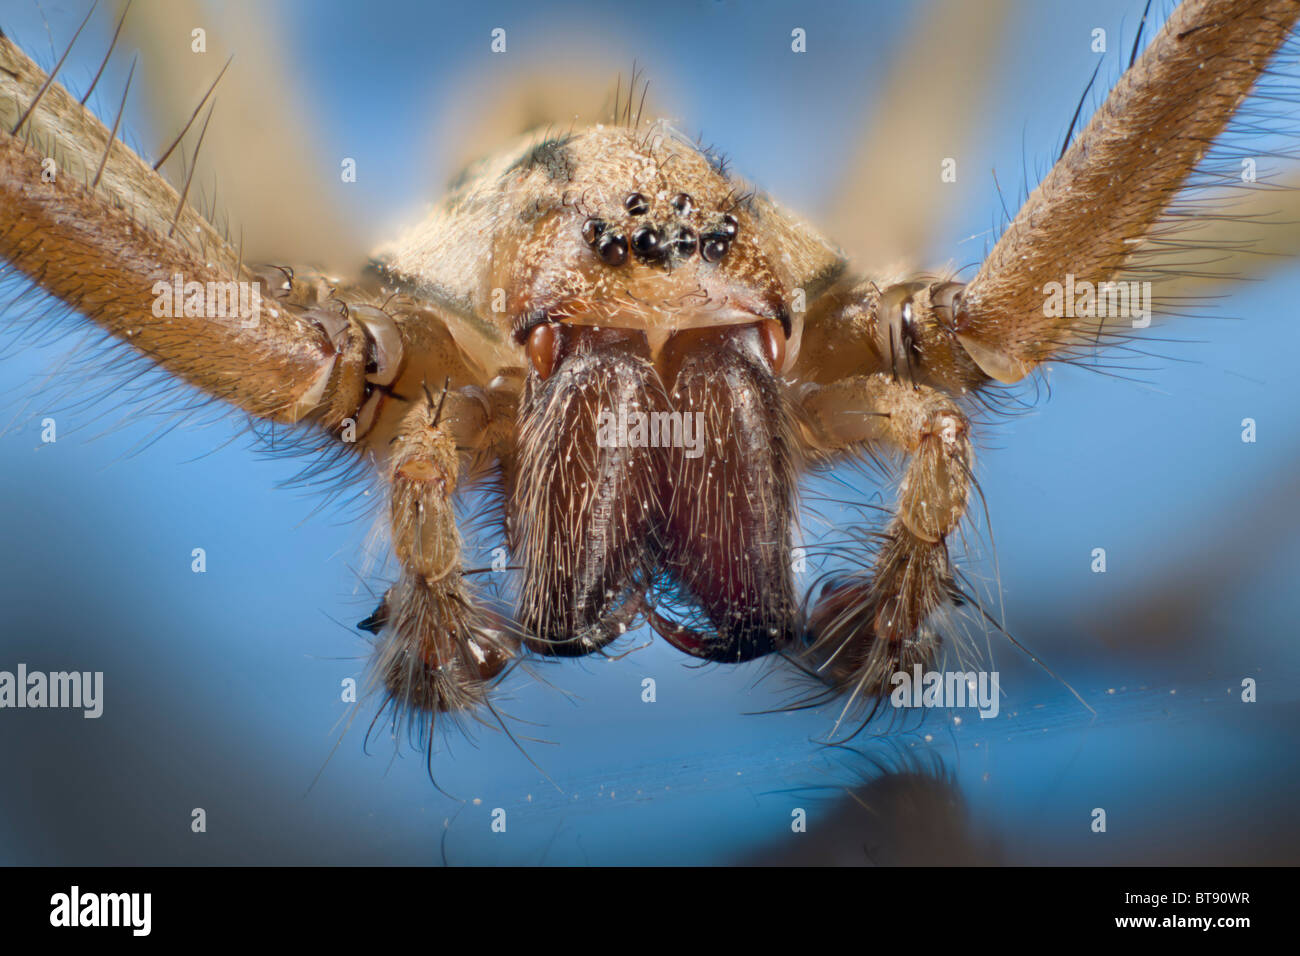 Detail of palps and mouthparts, eyes of Tegenaria domestica, domestic house spider - Stock Image